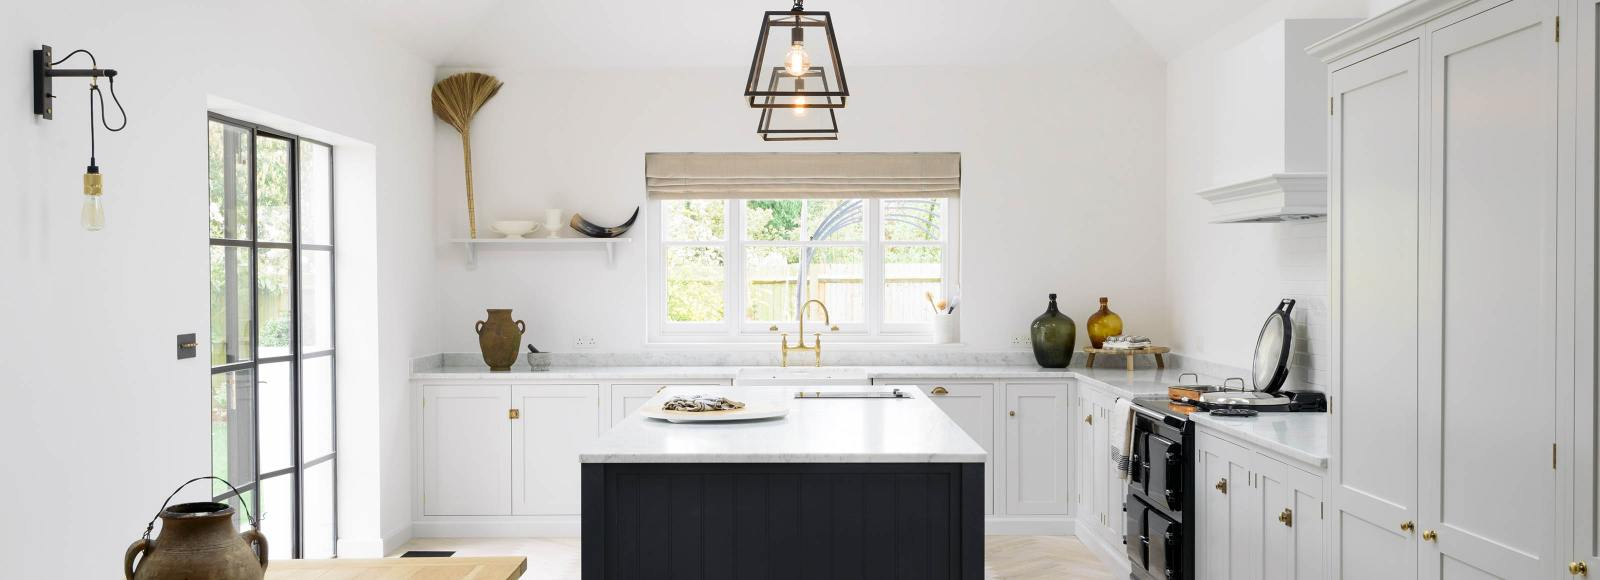 Bespoke Kitchens, Bathrooms and Interiors by deVOL photo 3